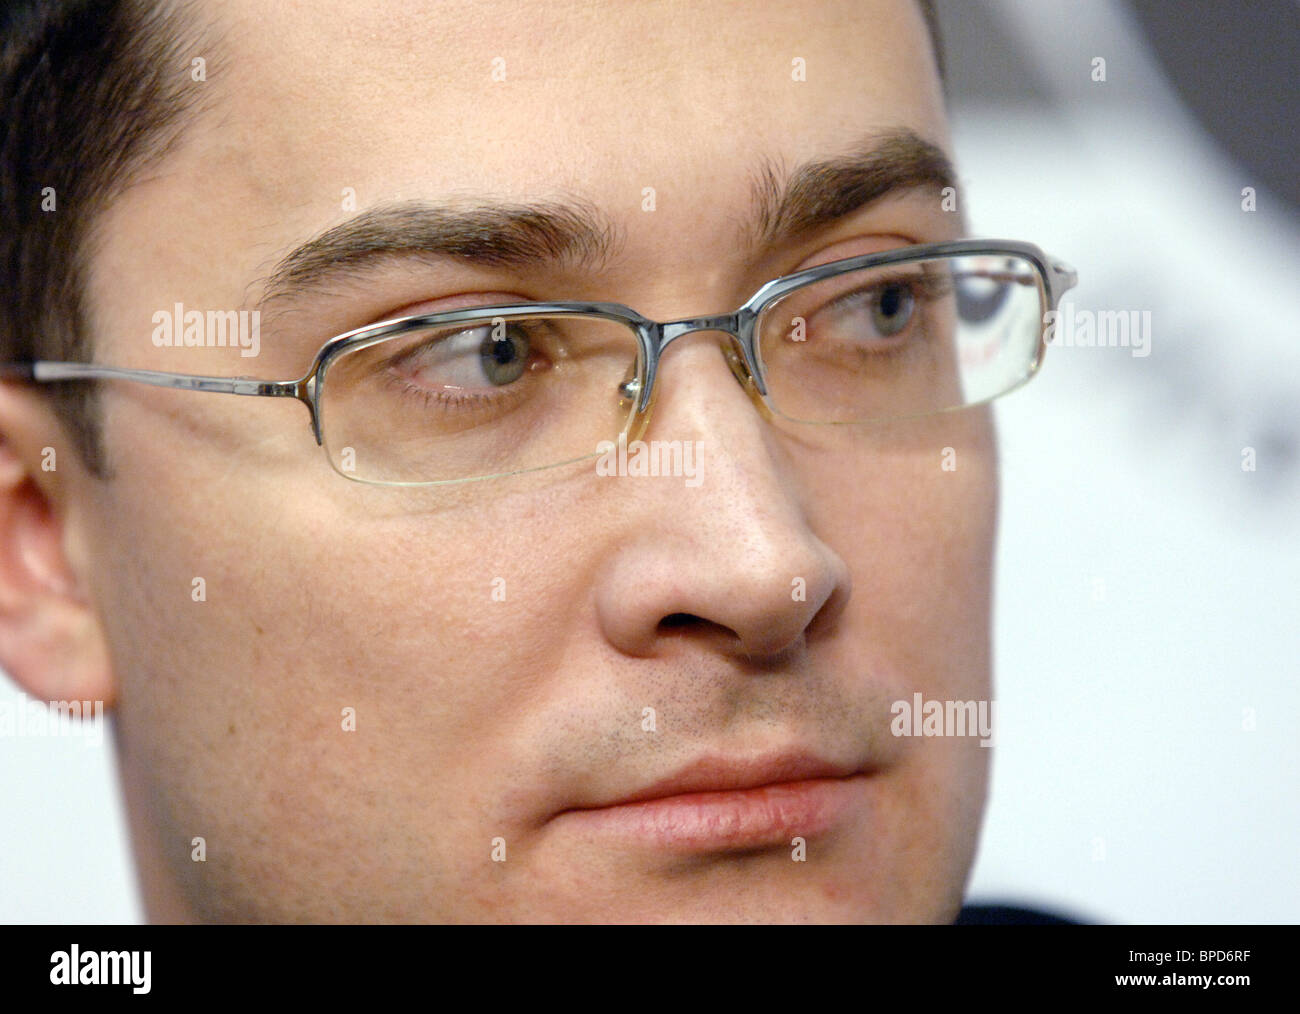 Gazprom spokesman Sergei Kupriyanov comments on situation with Russian natural gas transit via Belarus - Stock Image